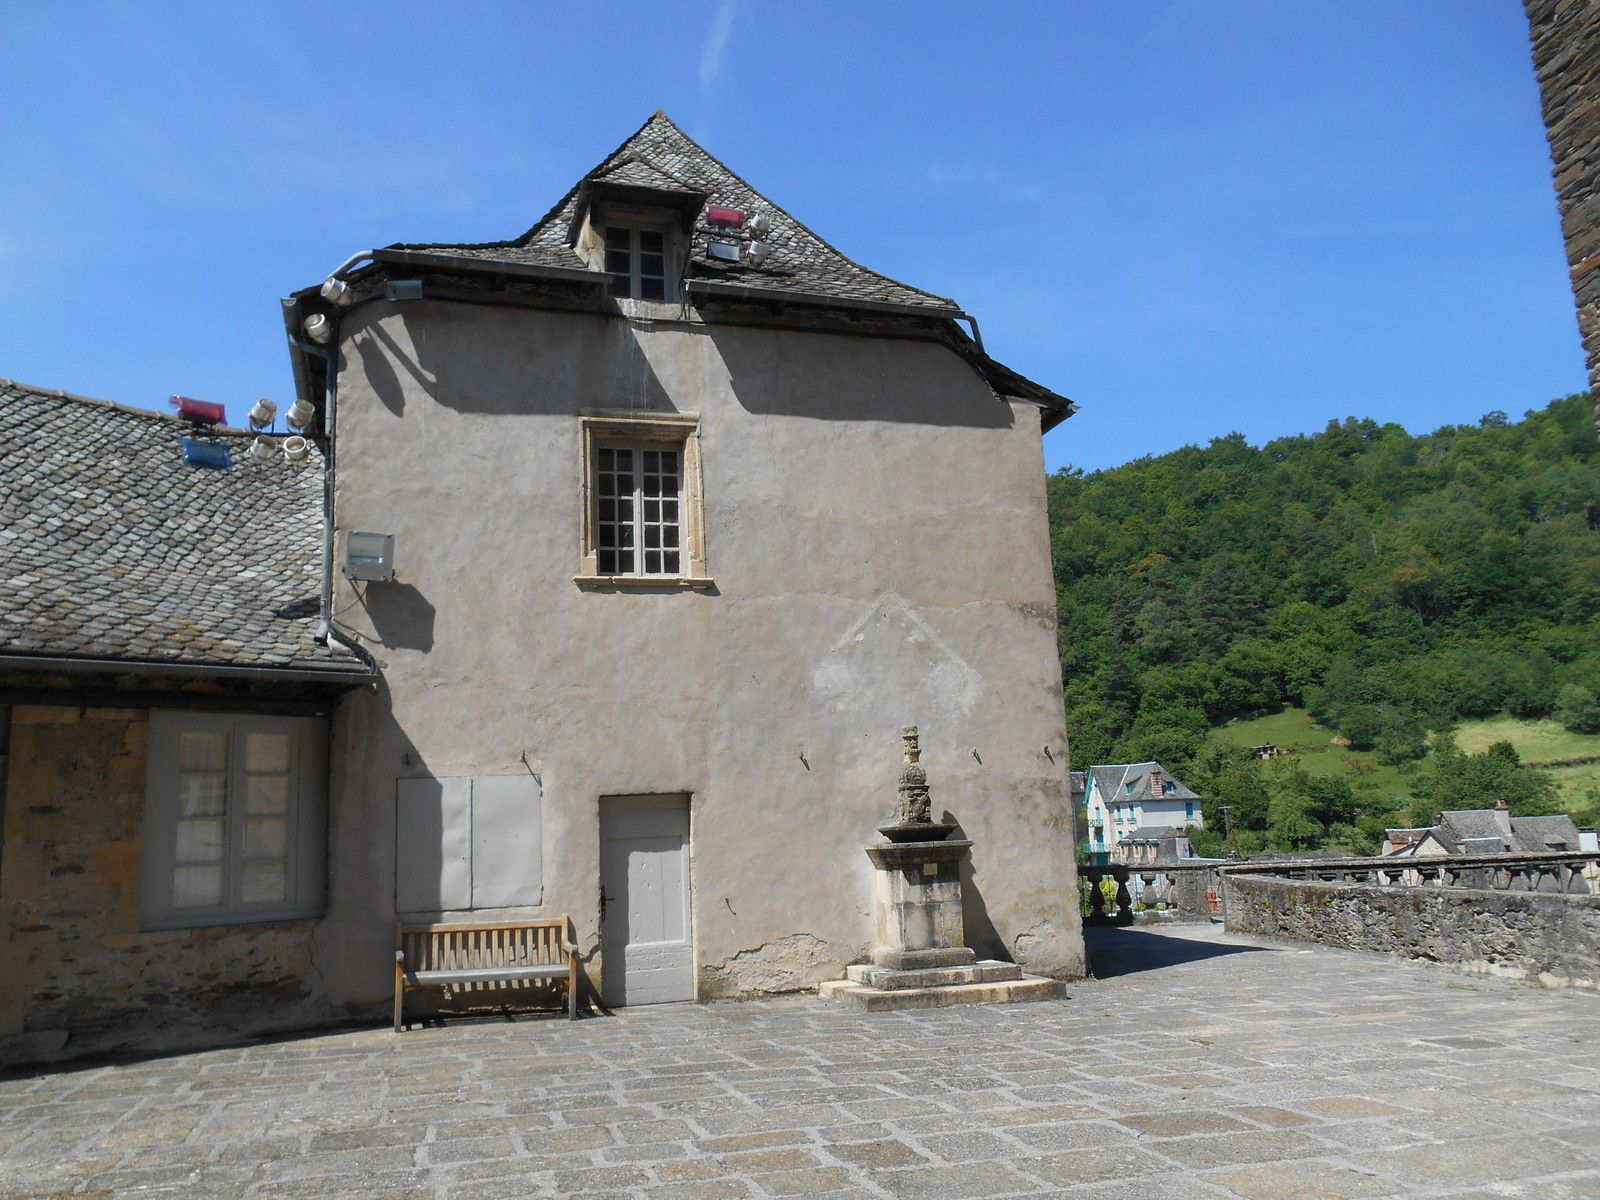 Les plus beaux villages de France: Estaing (Aveyron)